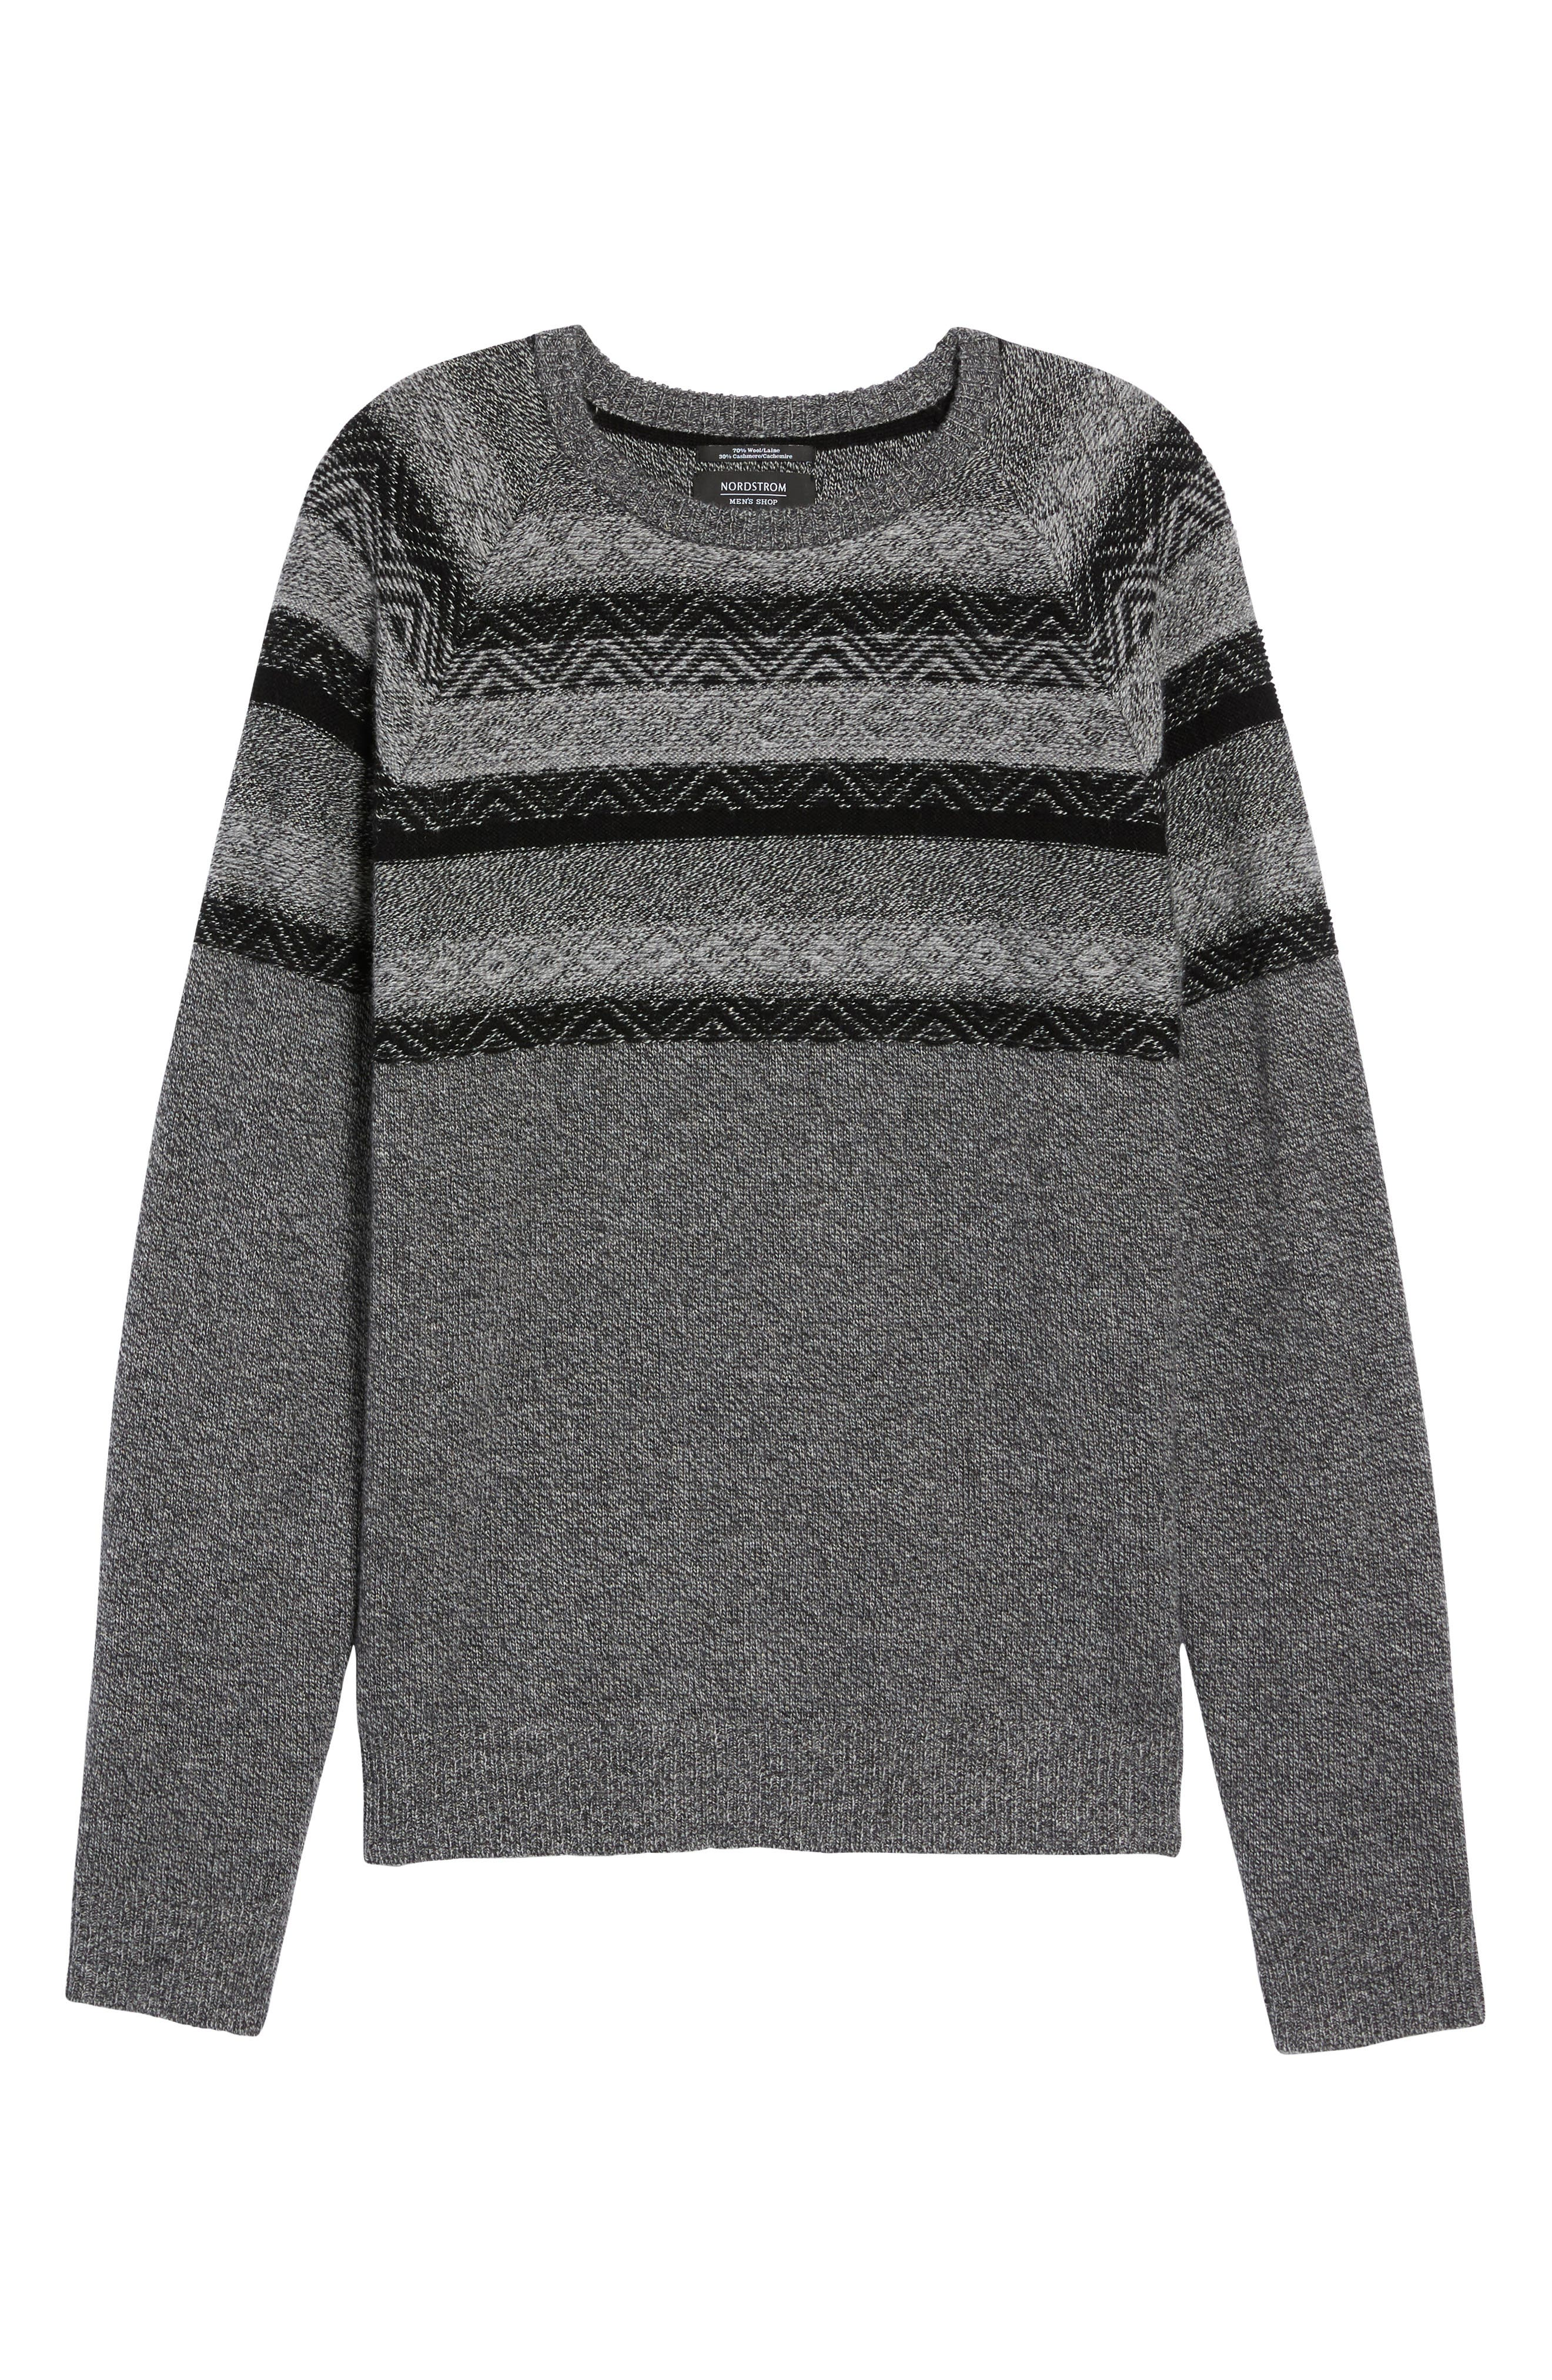 Pattern Wool & Cashmere Sweater,                             Alternate thumbnail 6, color,                             Grey Phantom